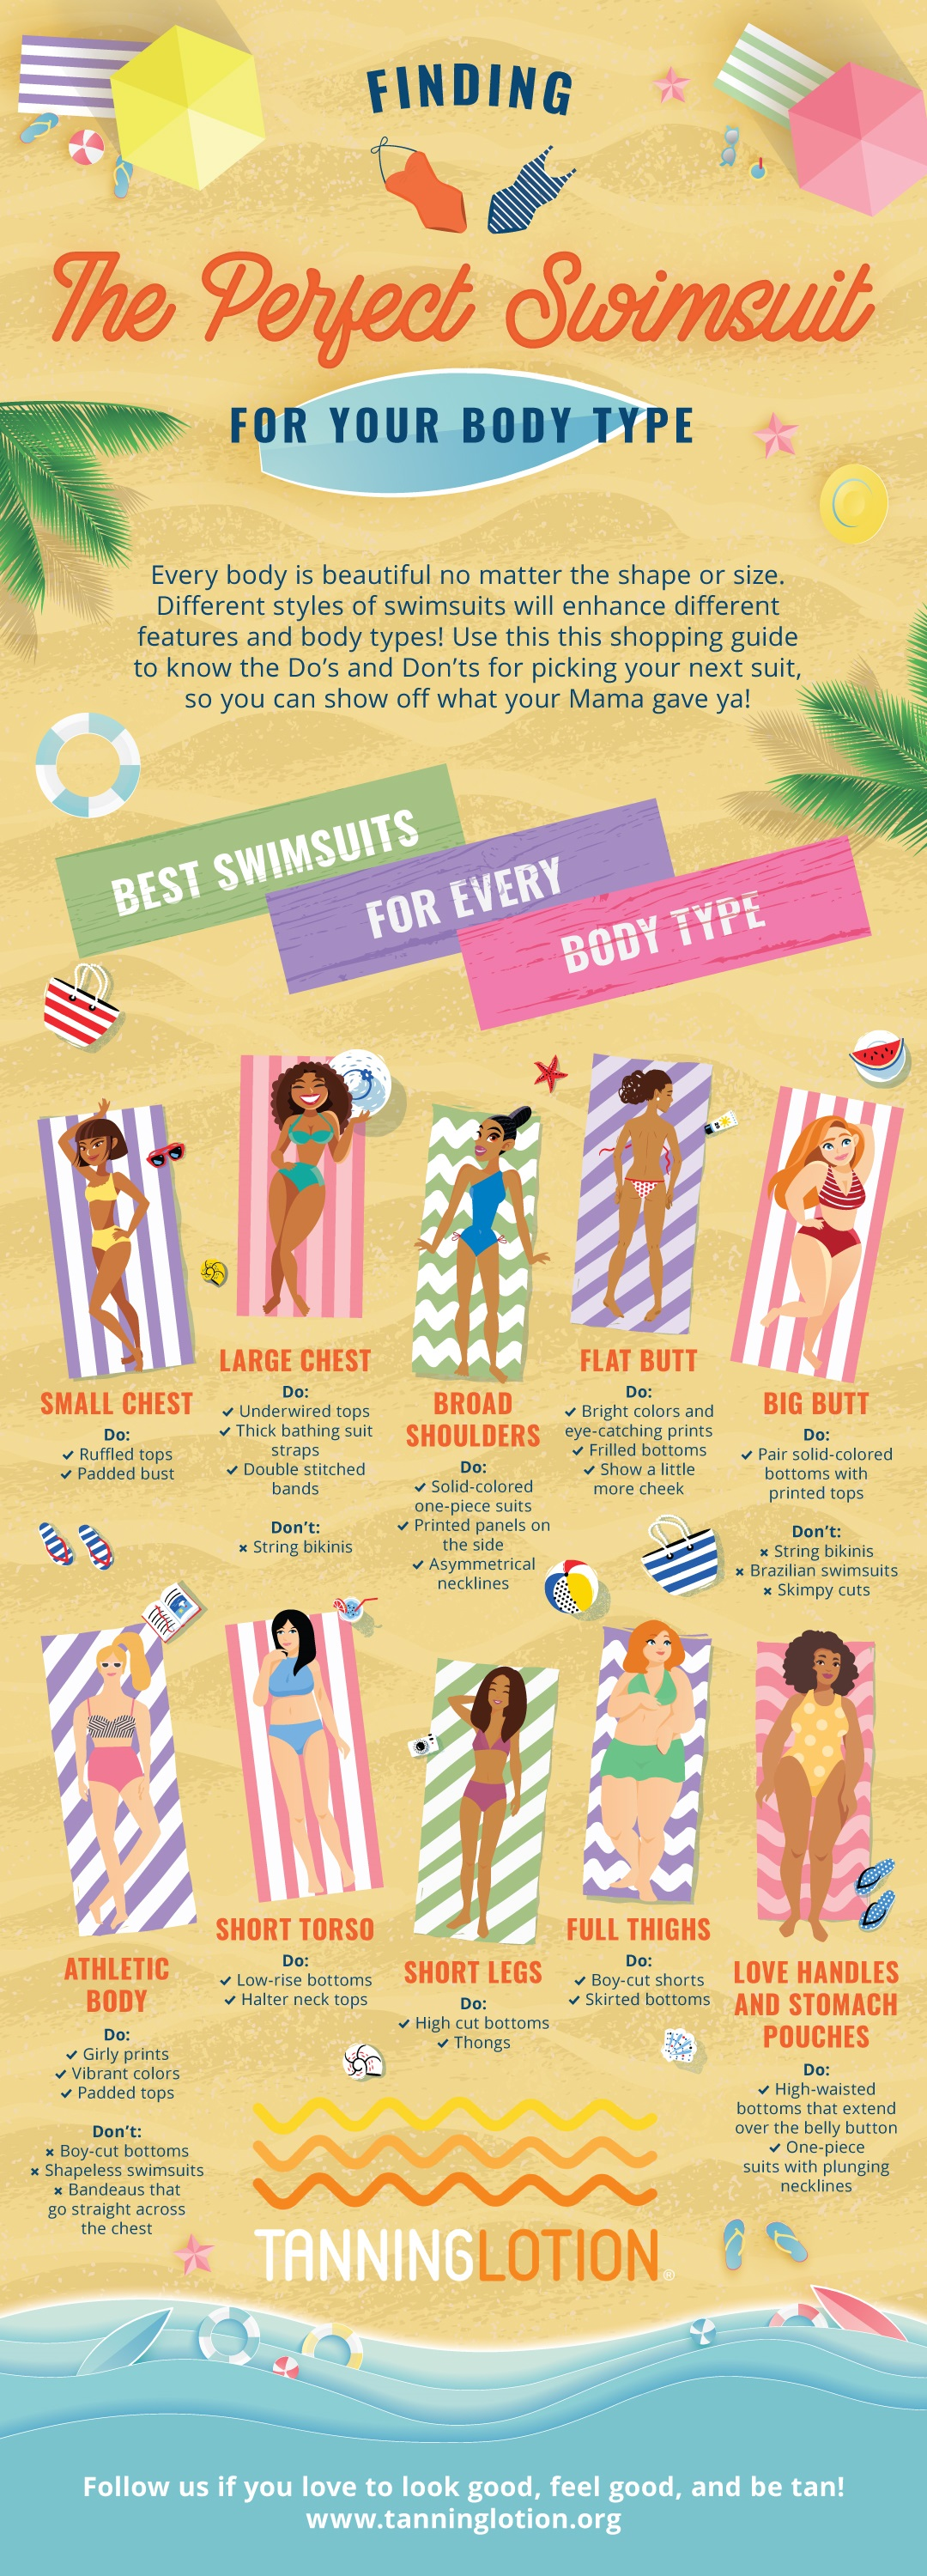 infographic | Finding The Perfect Swimsuit For Your Body Type | swimsuit style